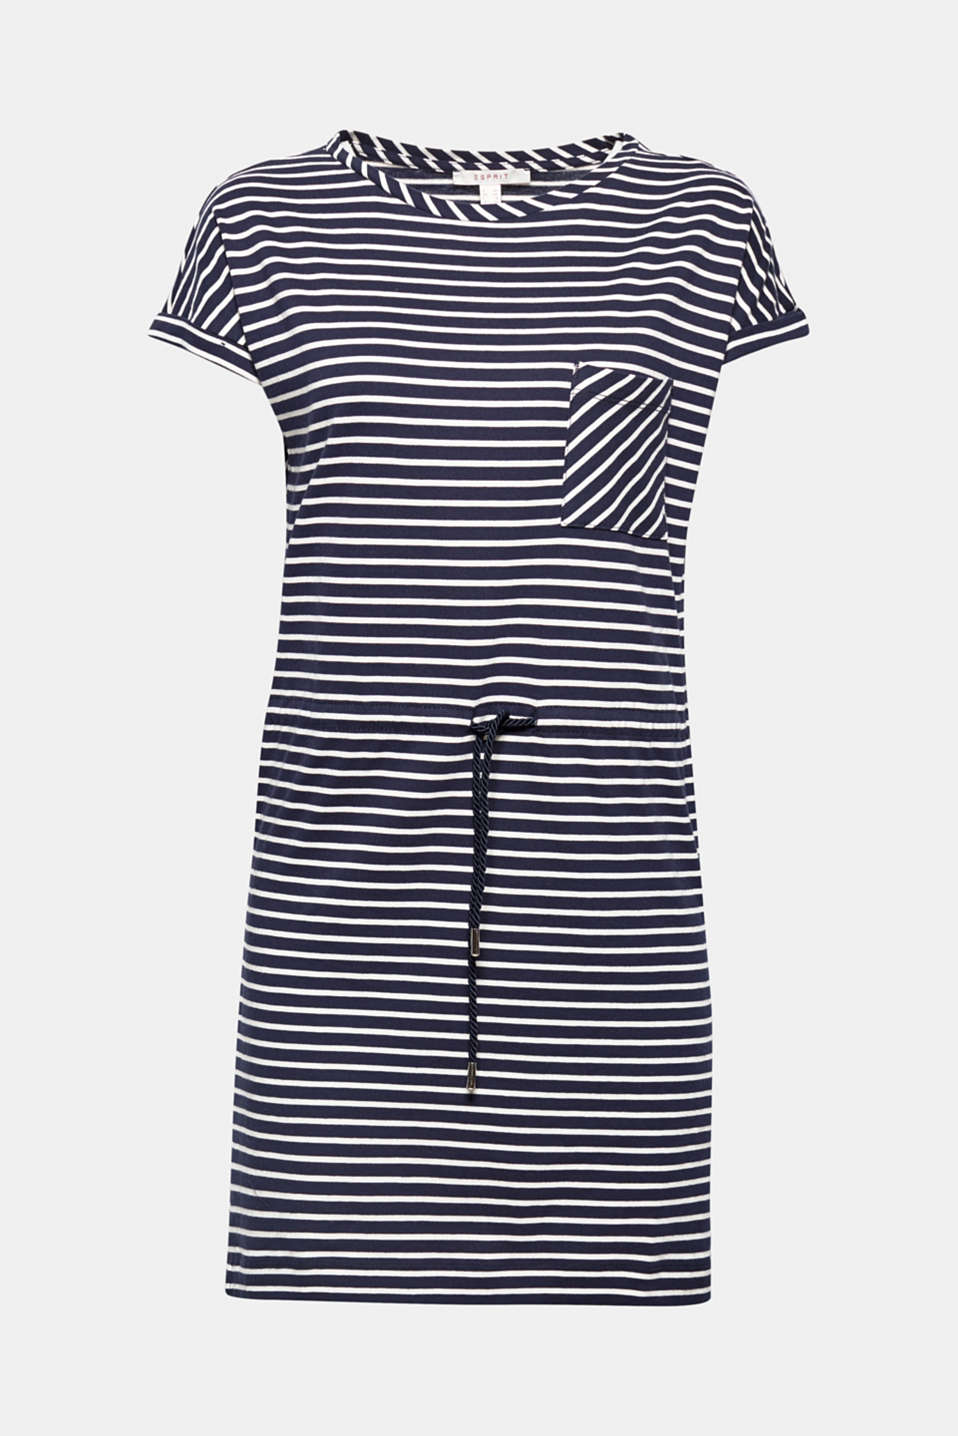 Casual, lightweight and incredibly comfortable! This striped T-shirt dress with a drawstring waist and breast pocket will quickly become an airy favourite piece for casual wear and holidays!